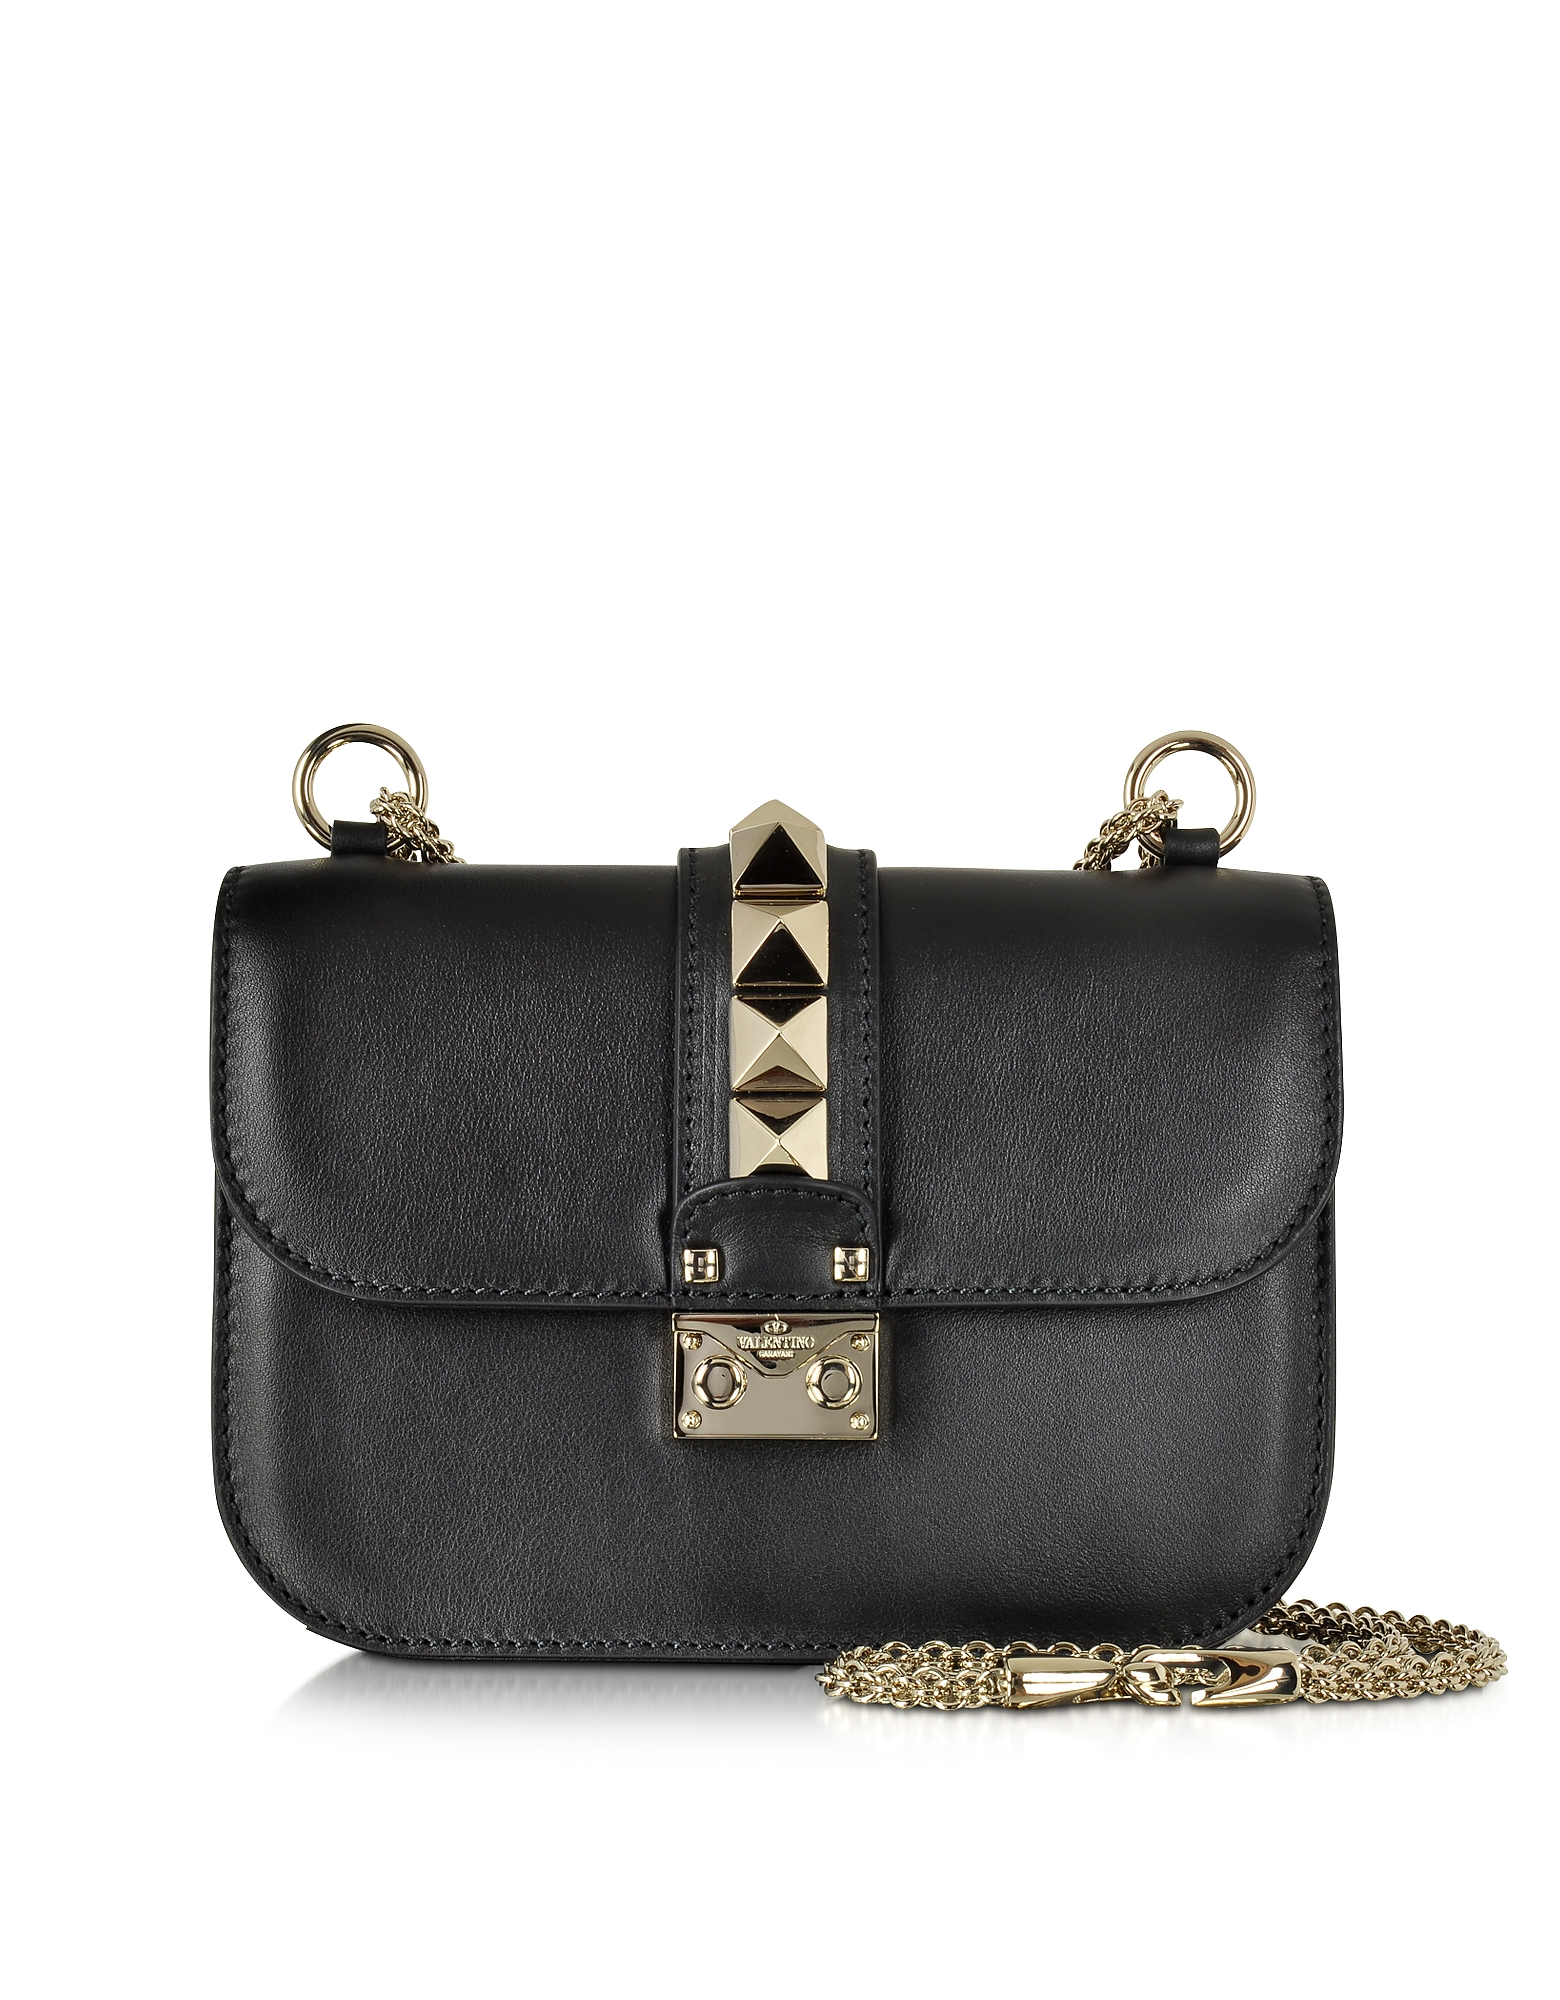 Valentino Handbags, Black Leather Small Chain Crossbody Bag